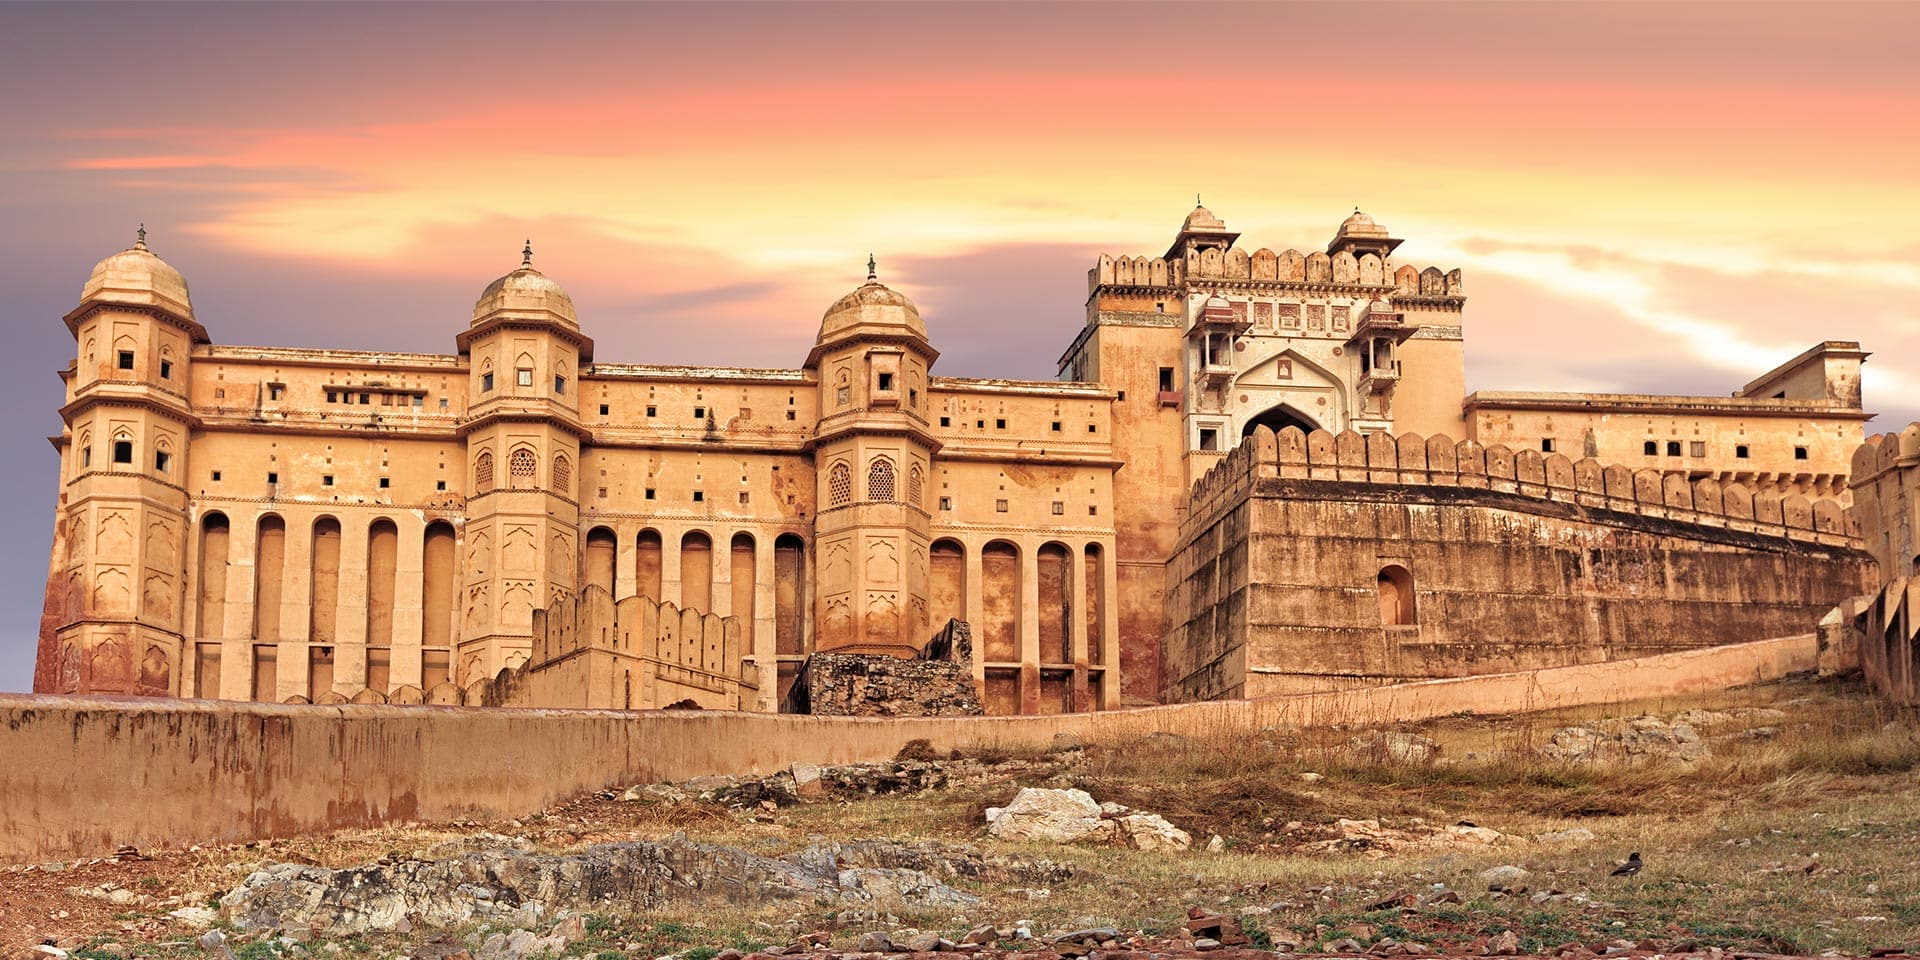 Jaipur Forts: Inside Nahargarh, Amber, and Jaigarh - Travelogues from Remote Lands